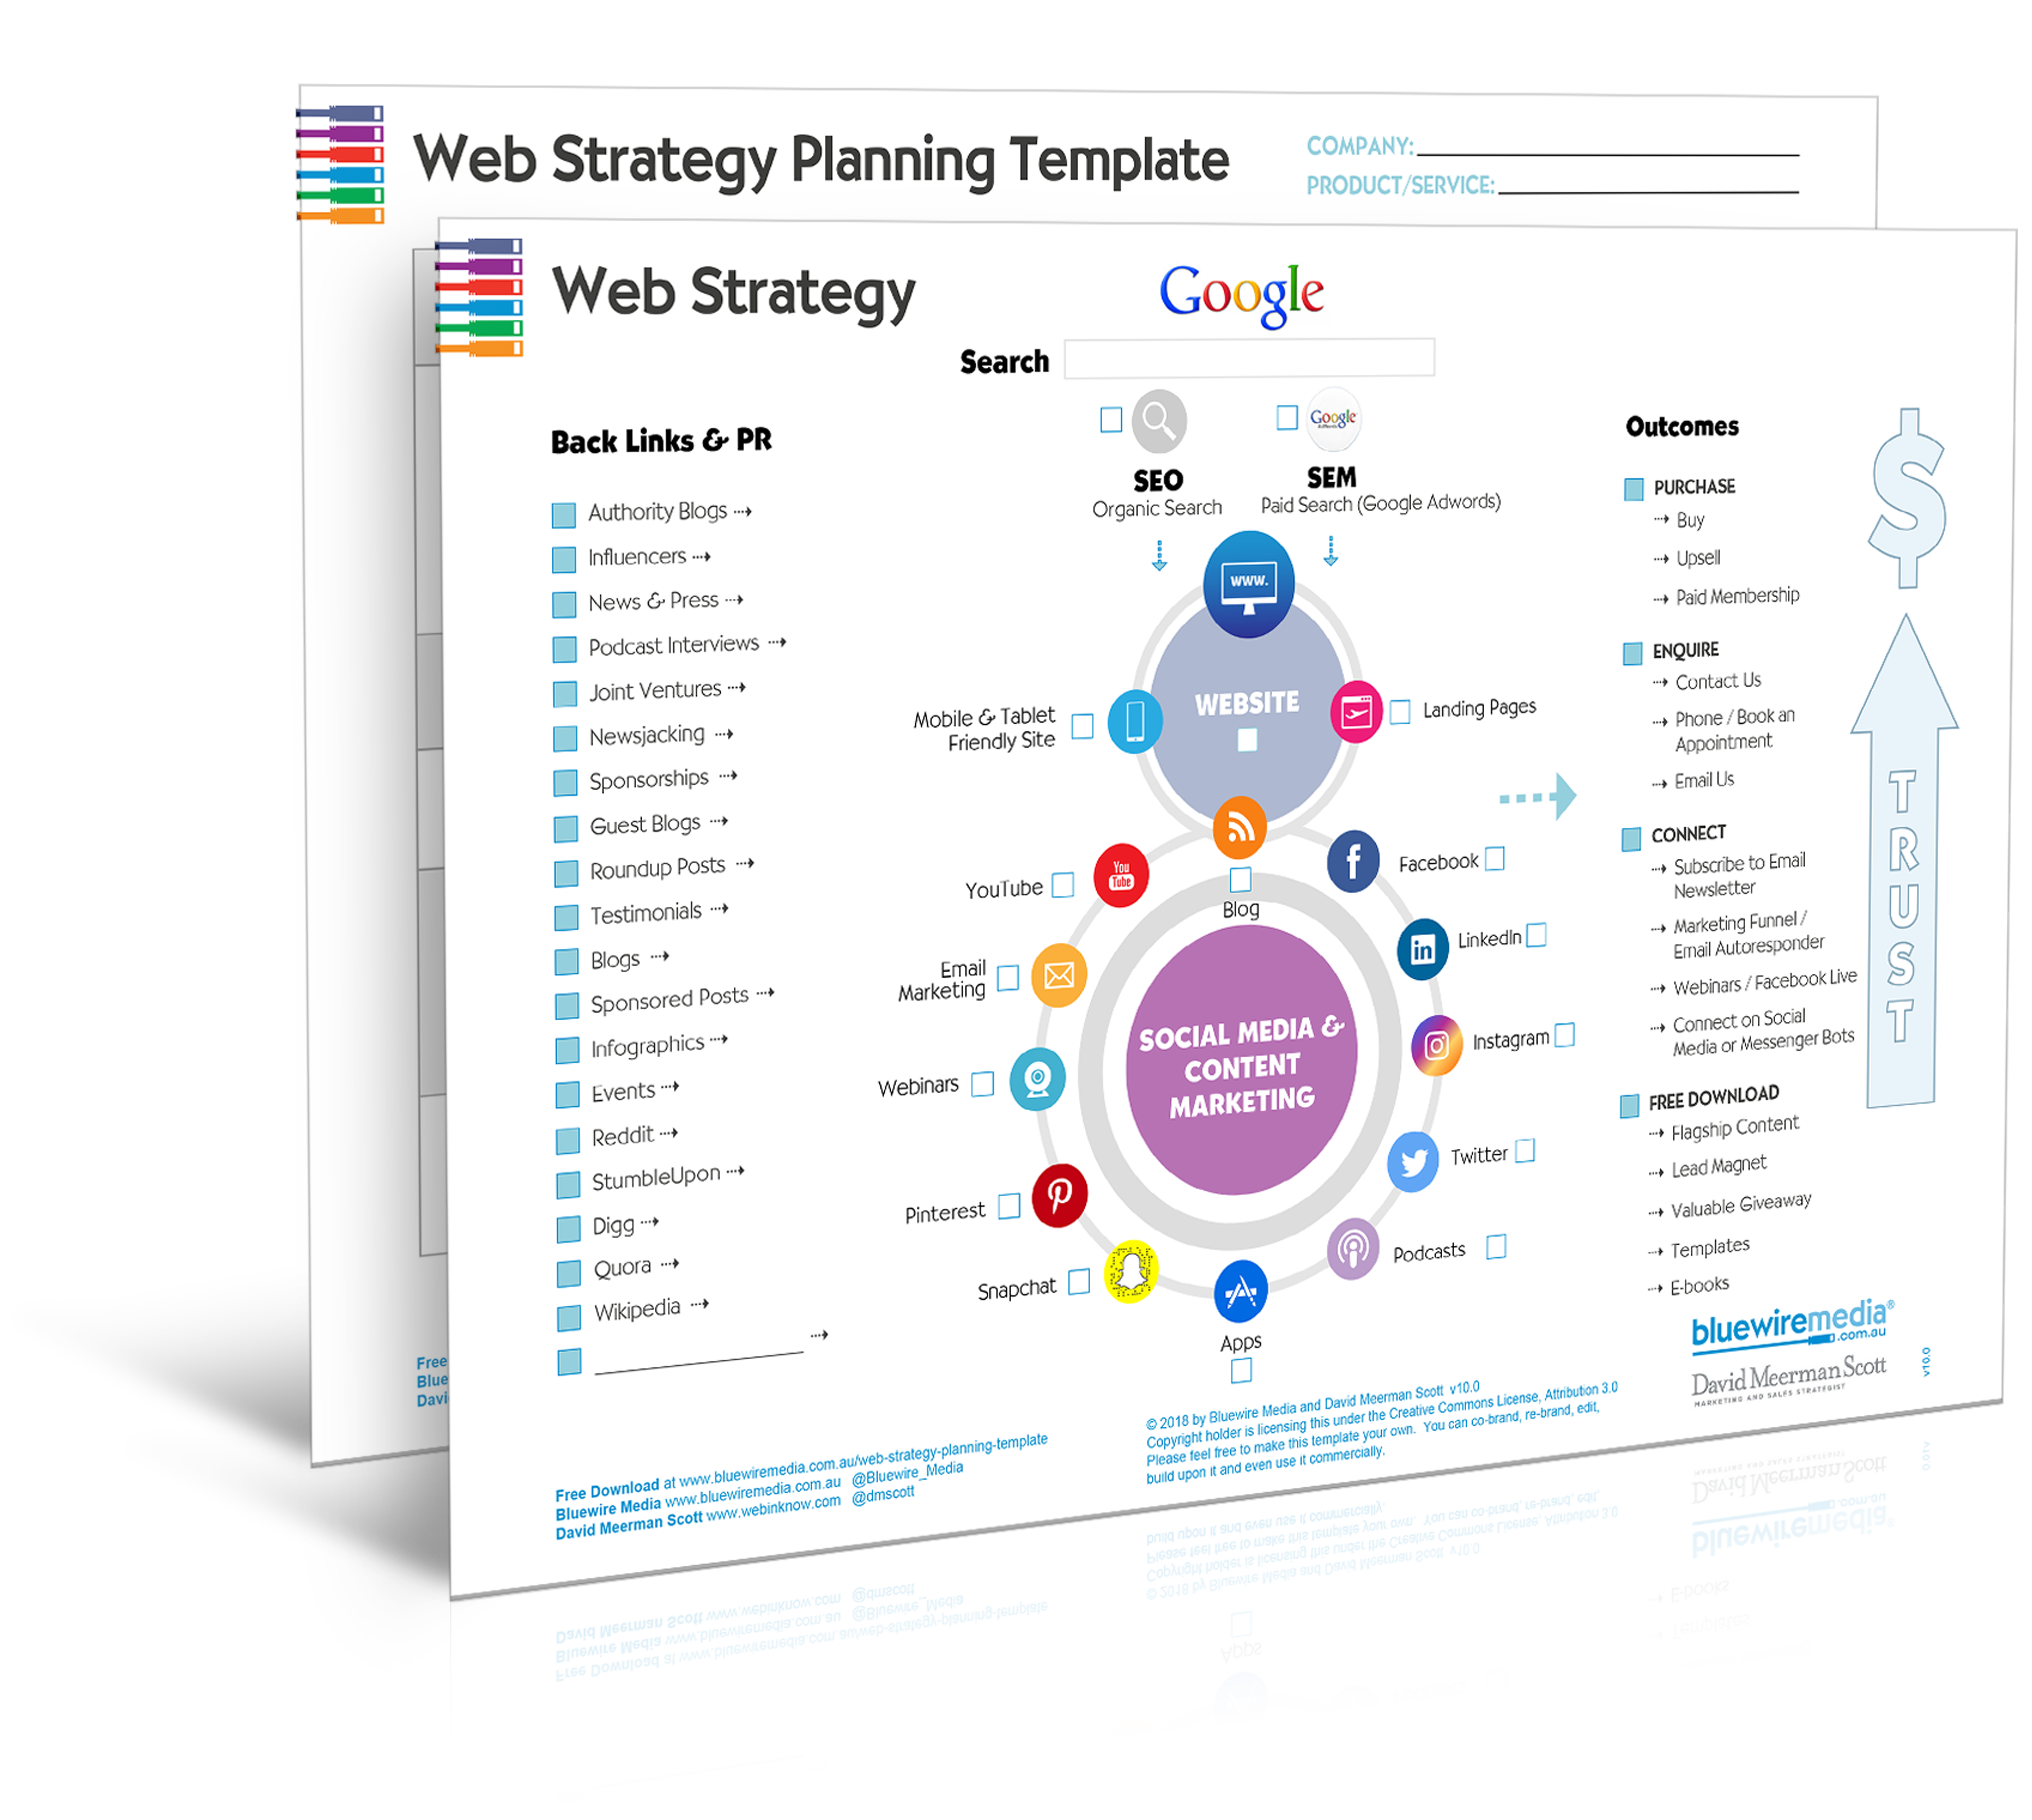 Digital Online Marketing] Web Strategy Planning Template 2018